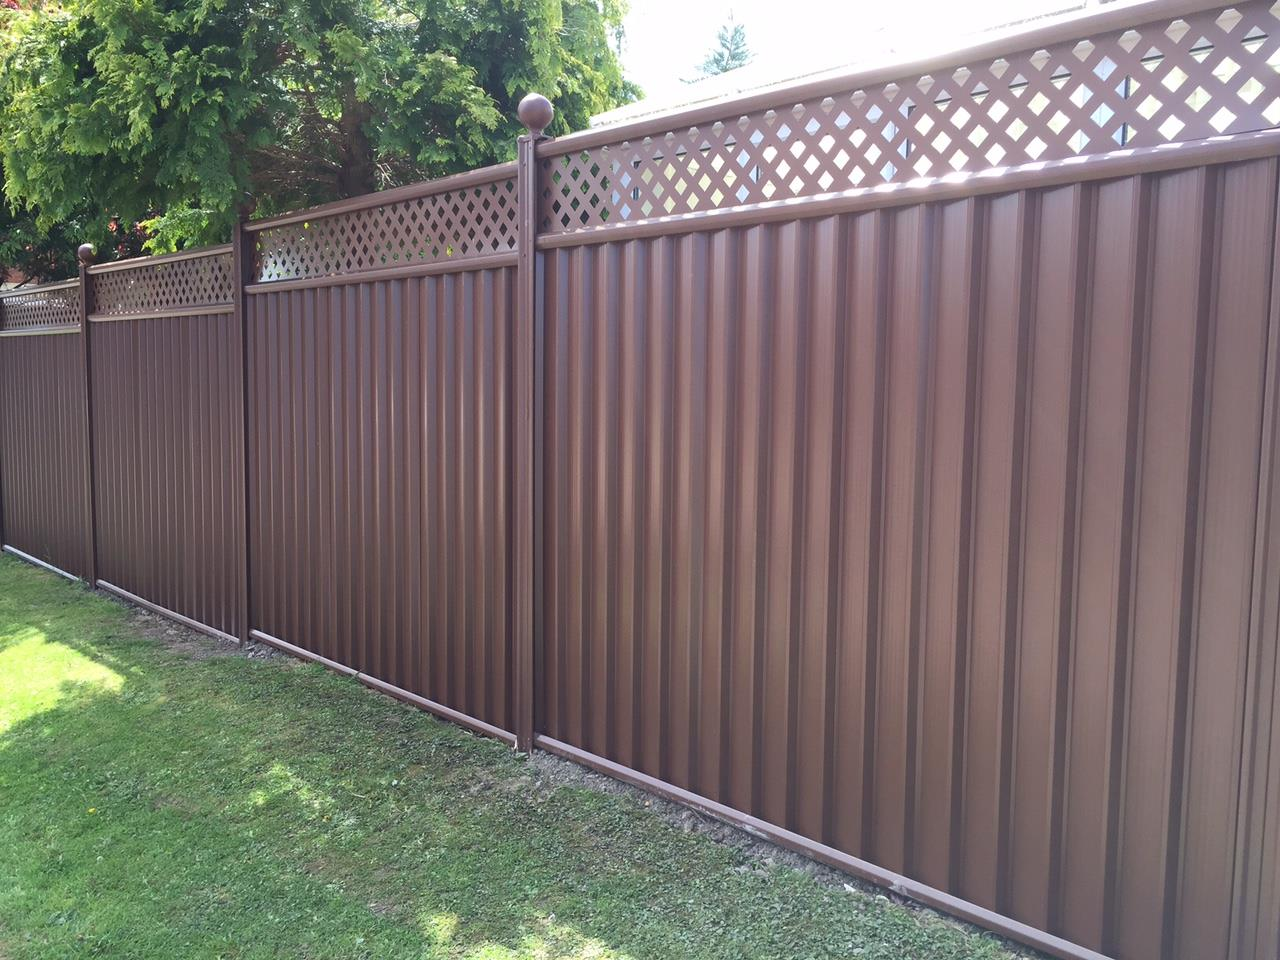 Choosing The Right Garden Fencing For Security